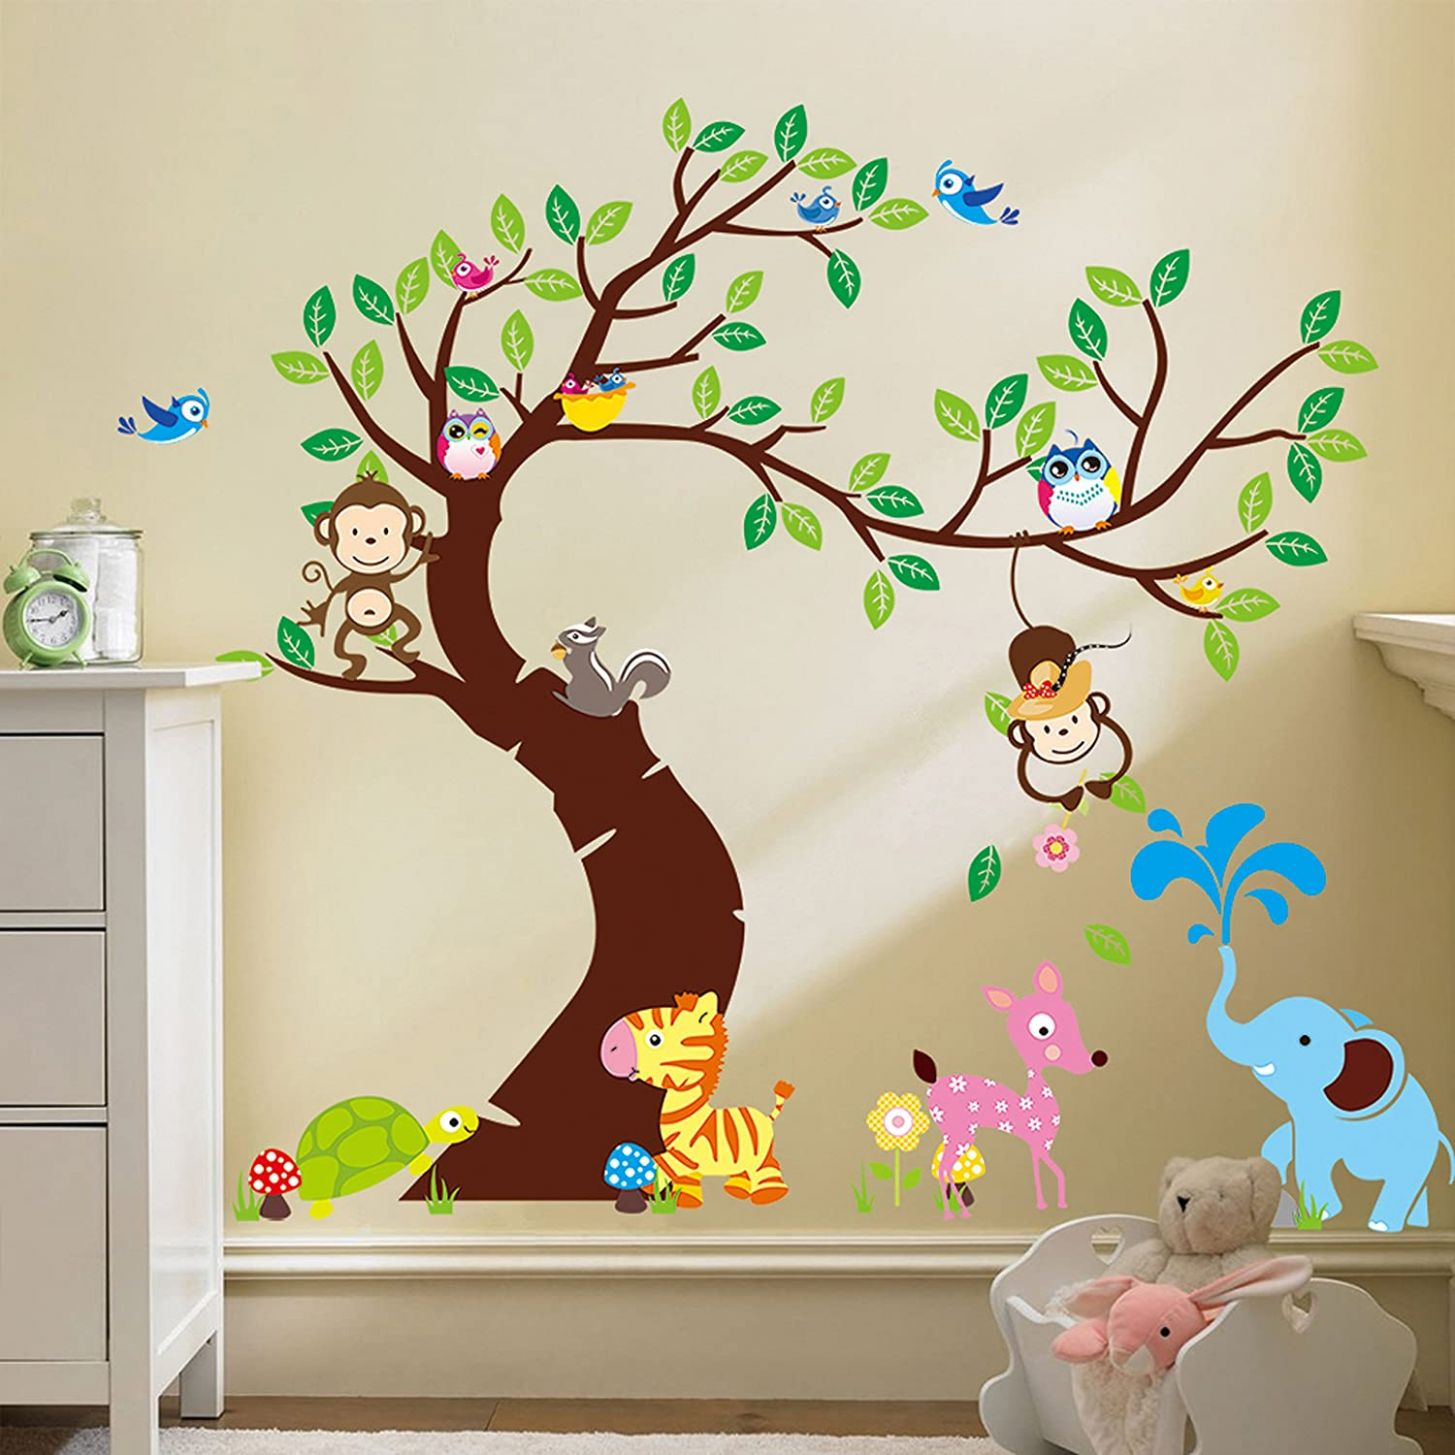 Baby Nursery Wall Decals Jungle Monkey Elephant Zoo Vinyl Wall Decal Sticker - baby room wall art